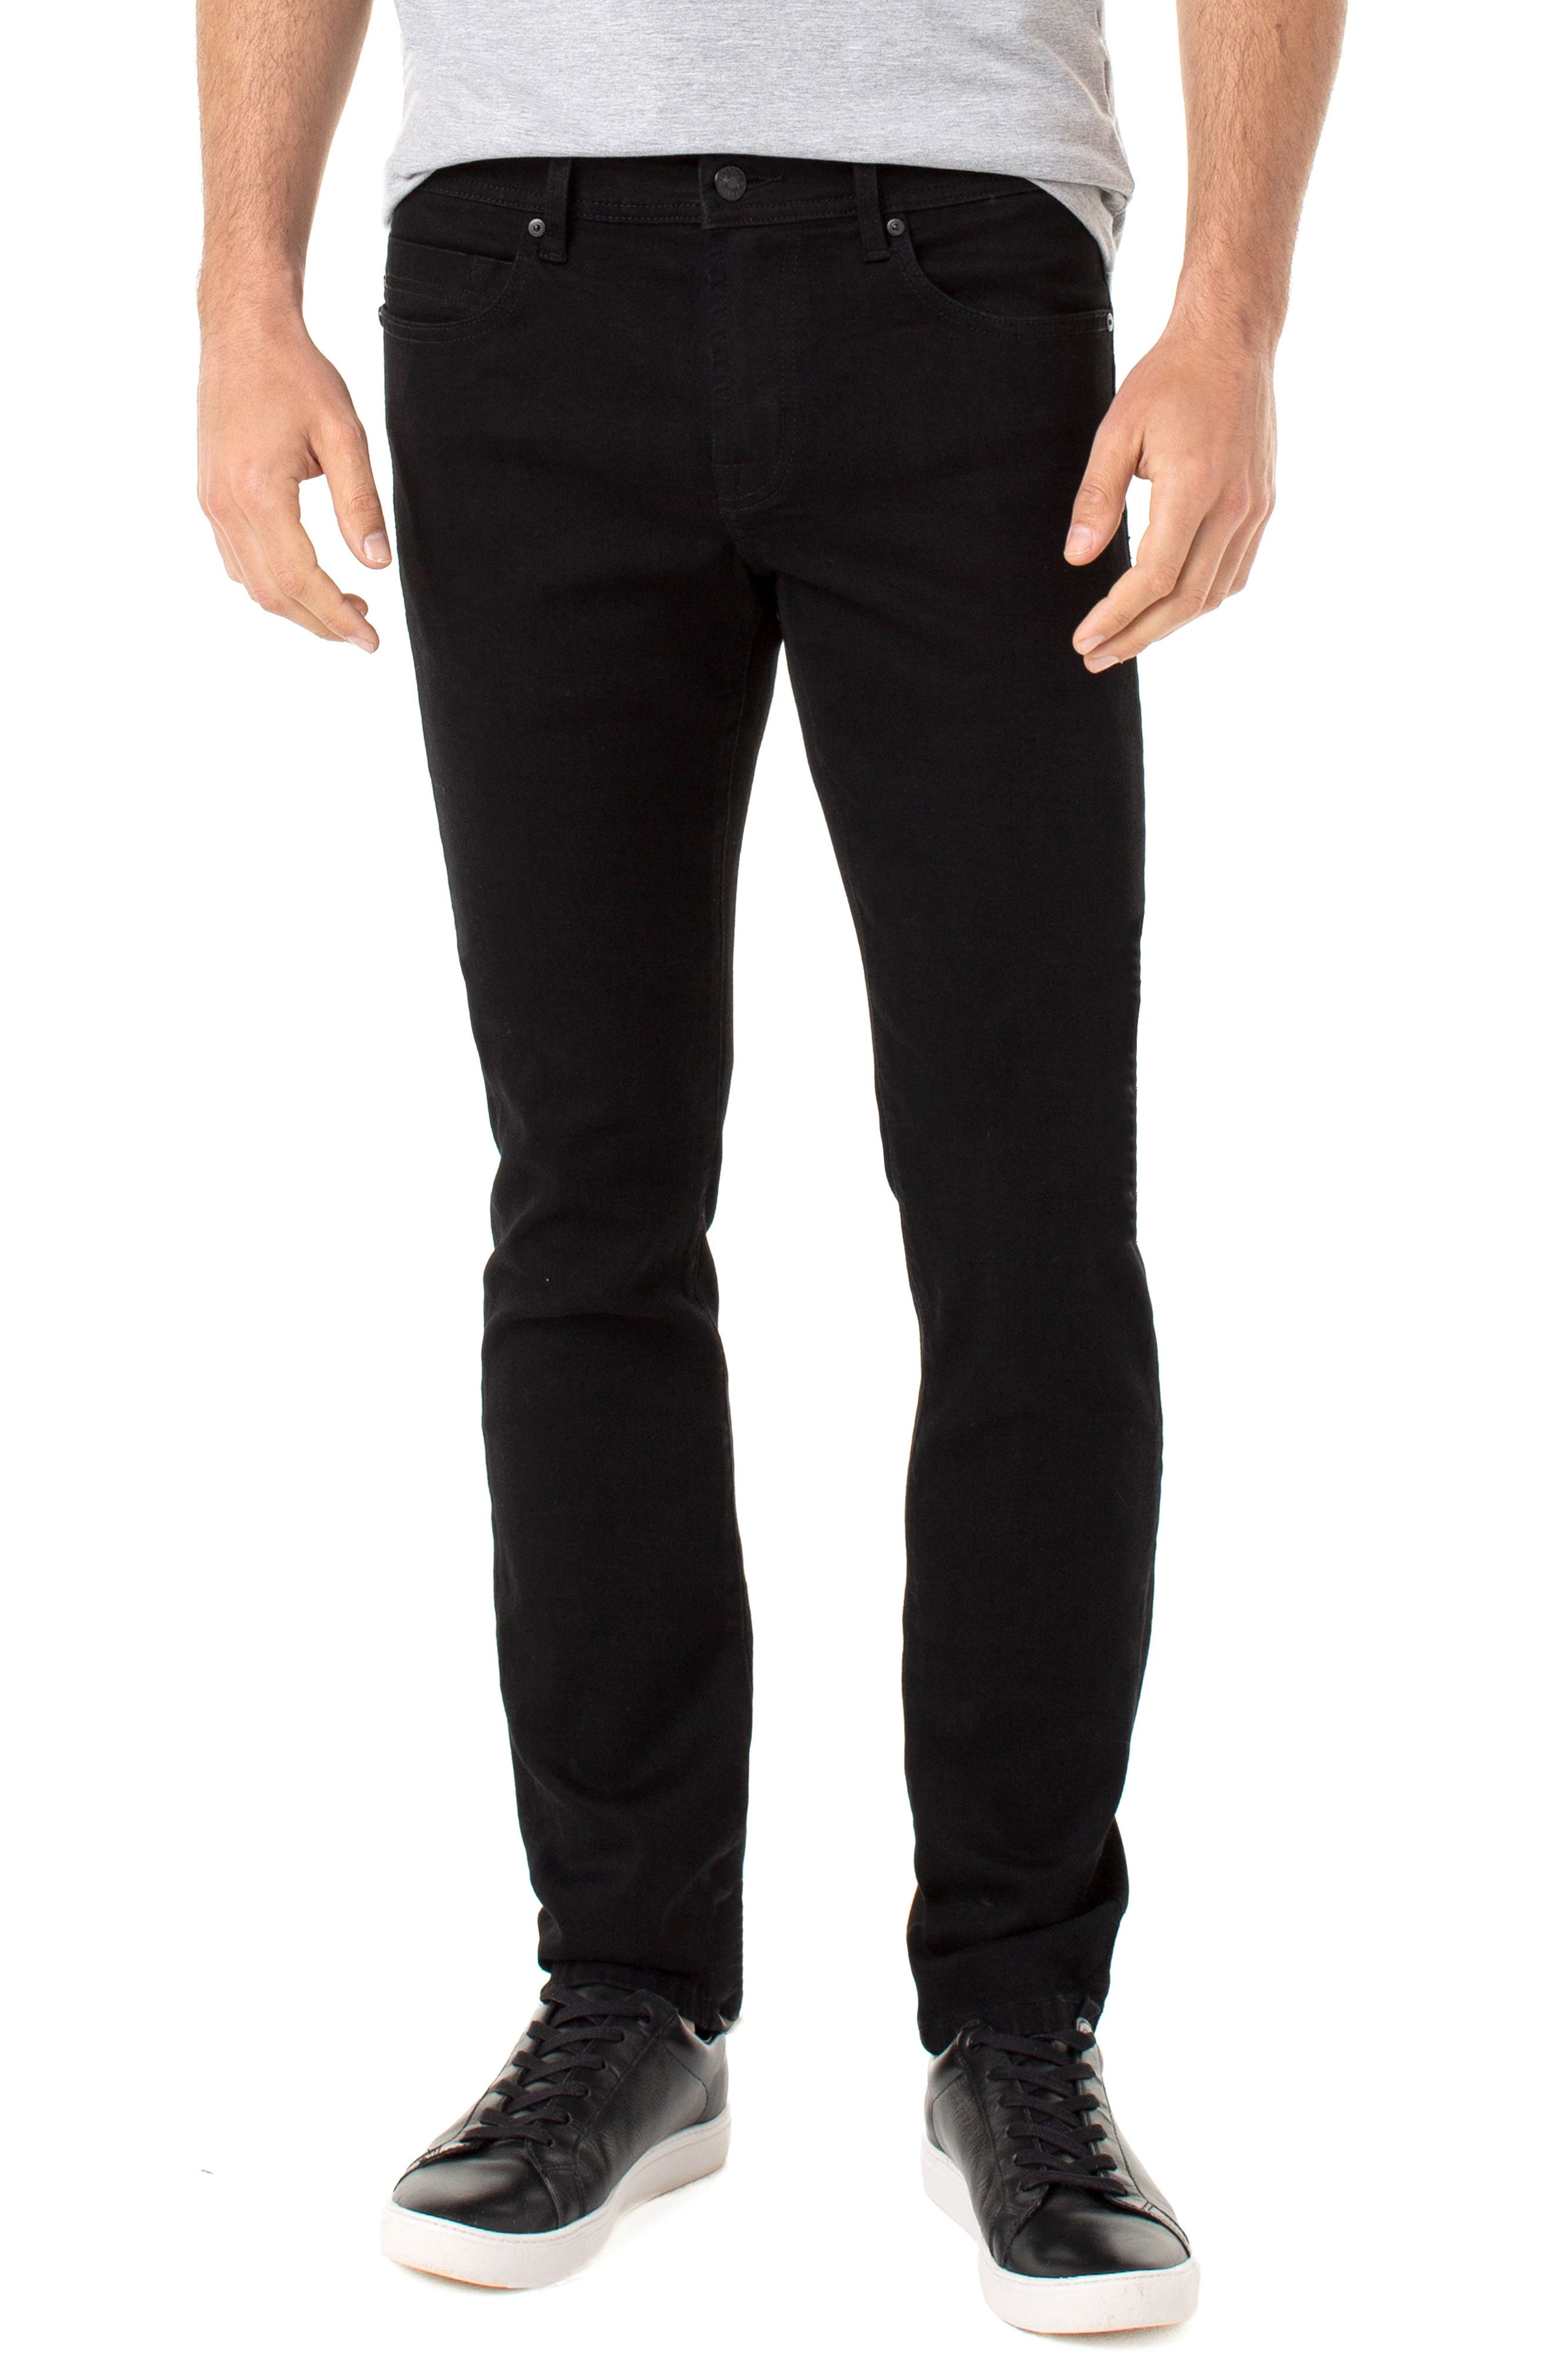 A dark wash brings smart versatility to soft stretch-denim jeans cut with a comfortable fit through the seat and thighs that slims at the knee. Style Name: Liverpool Kingston Modern Straight Leg Jeans (Odyssey). Style Number: 5896267. Available in stores.